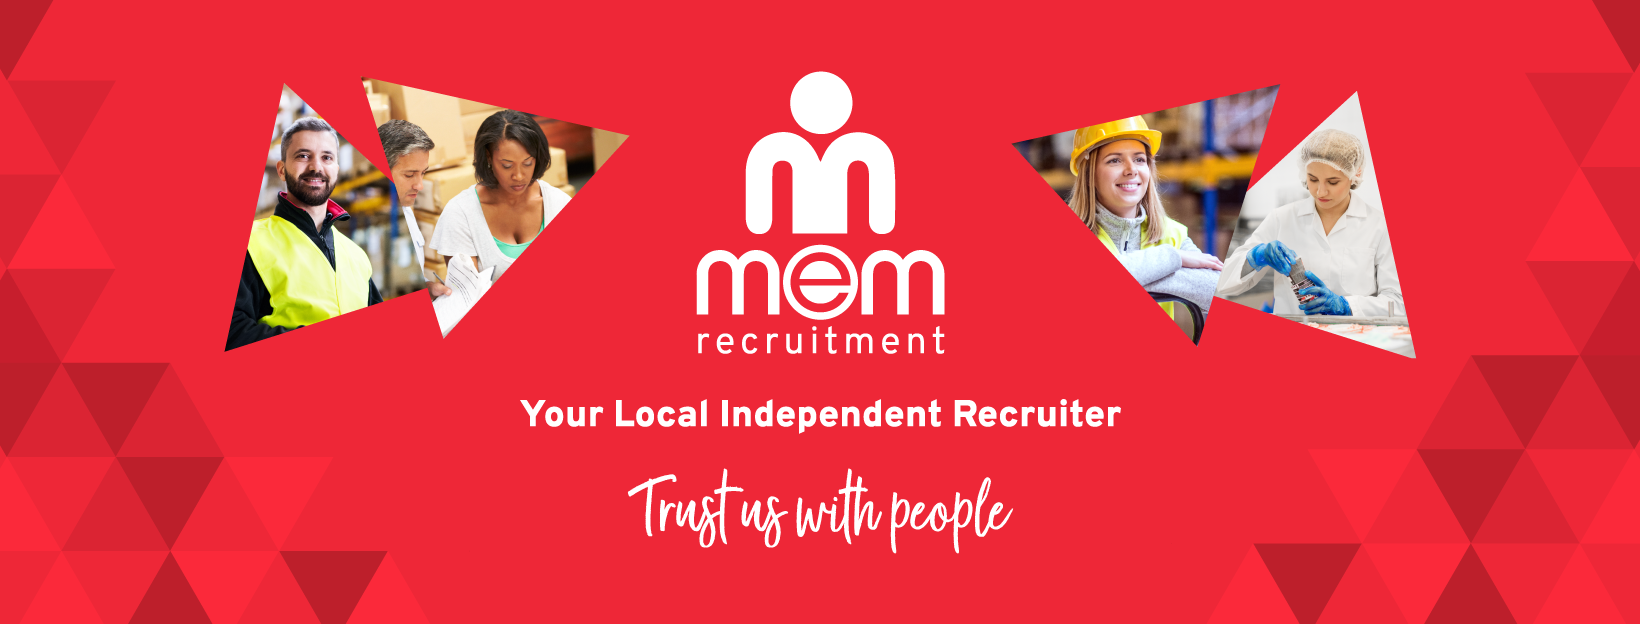 MEM Recruitment - Trust us with people